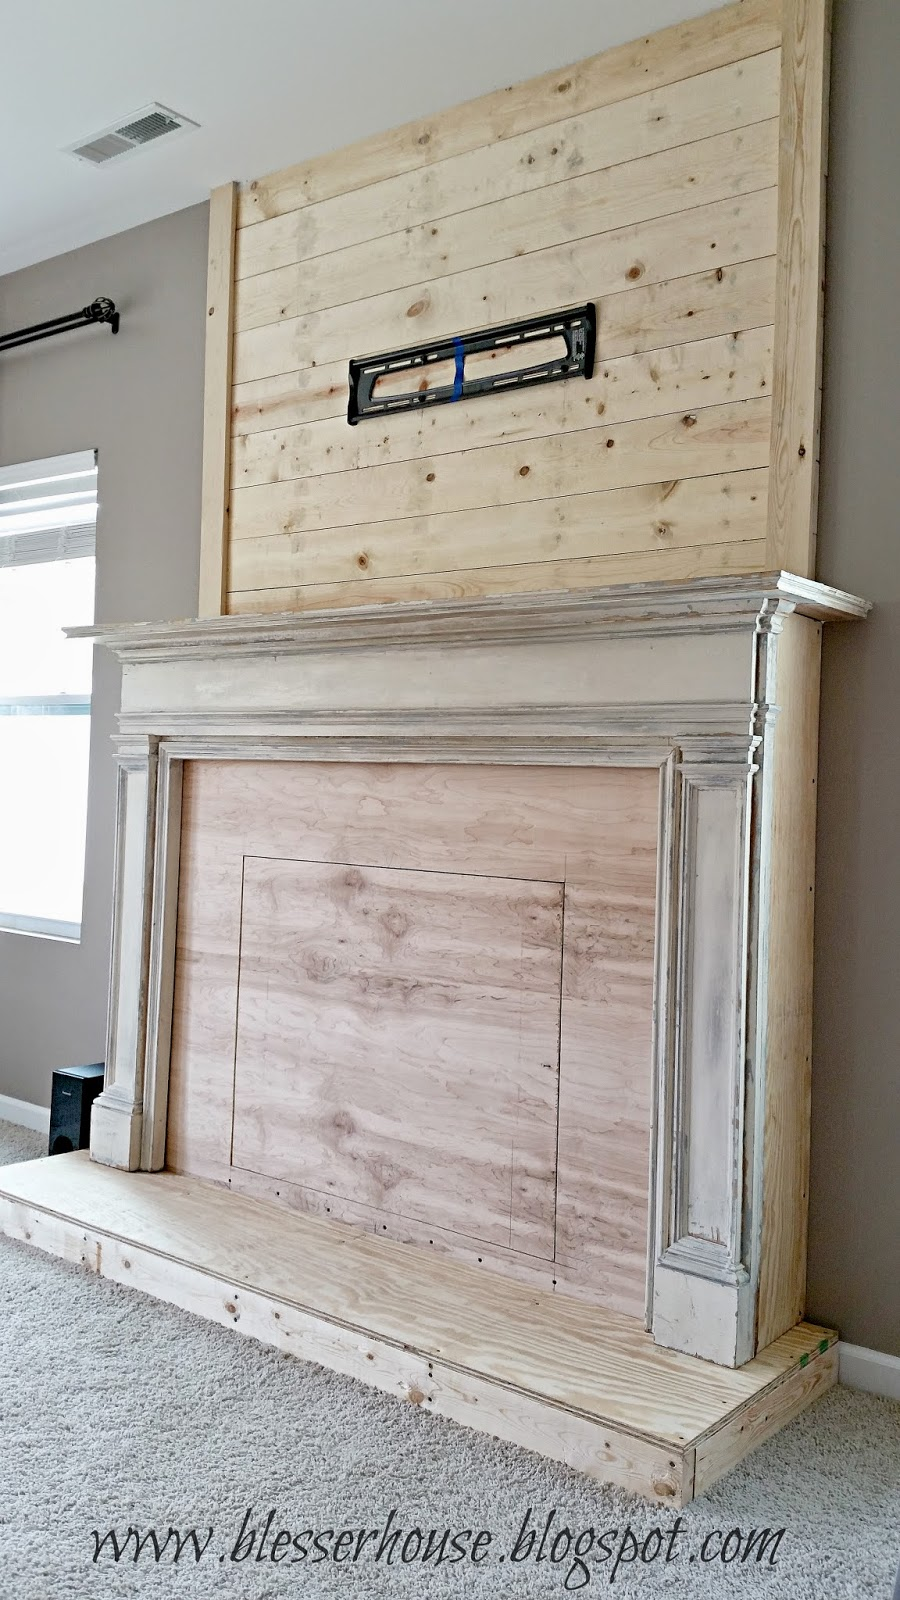 Diy faux fireplace entertainment center part two bless 39 er house - Build sealed fireplace home step step ...